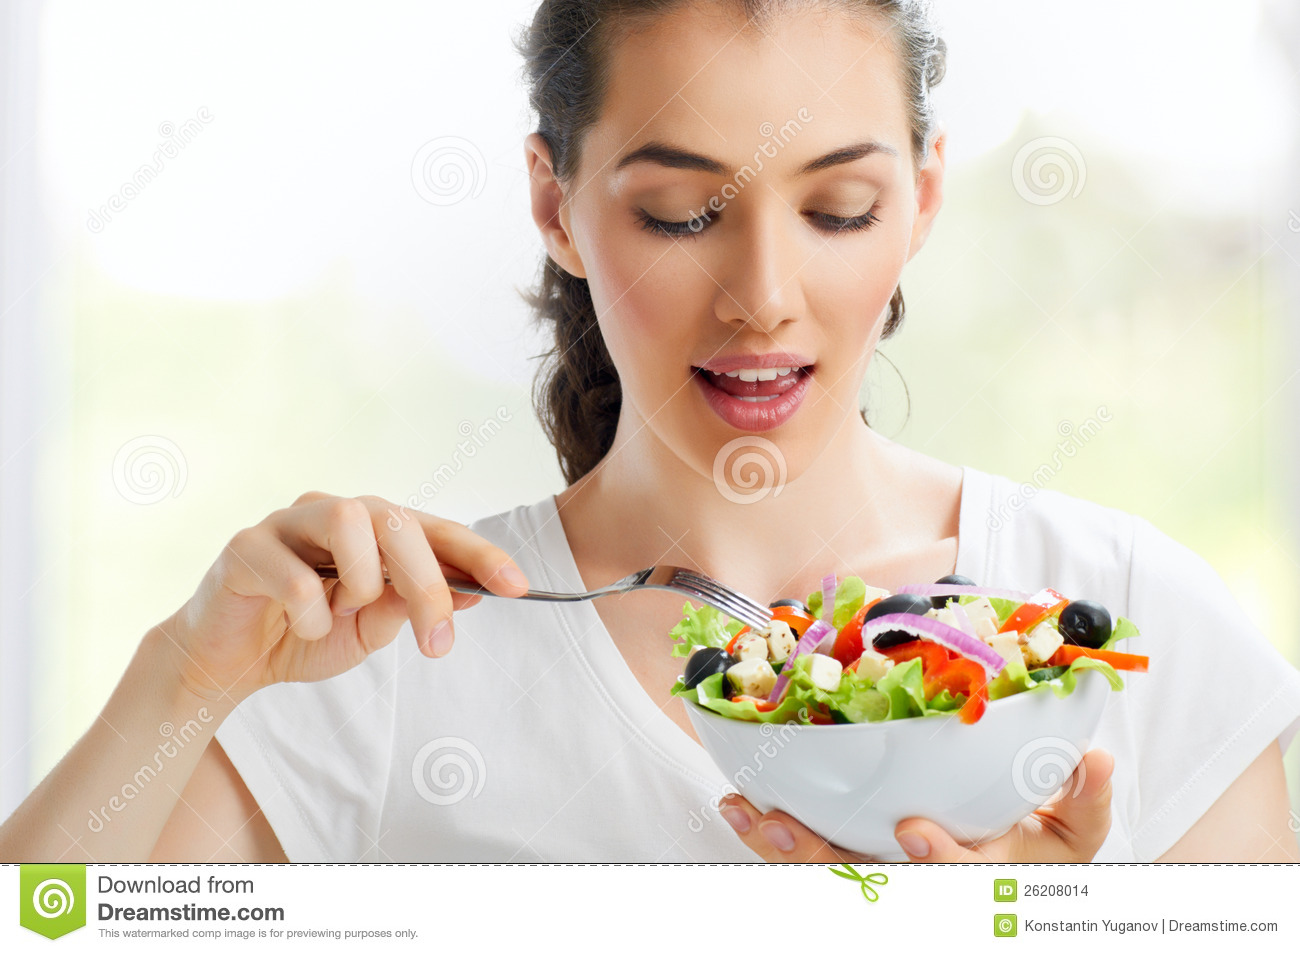 Eating Healthy Food Stock Images - Image: 26208014